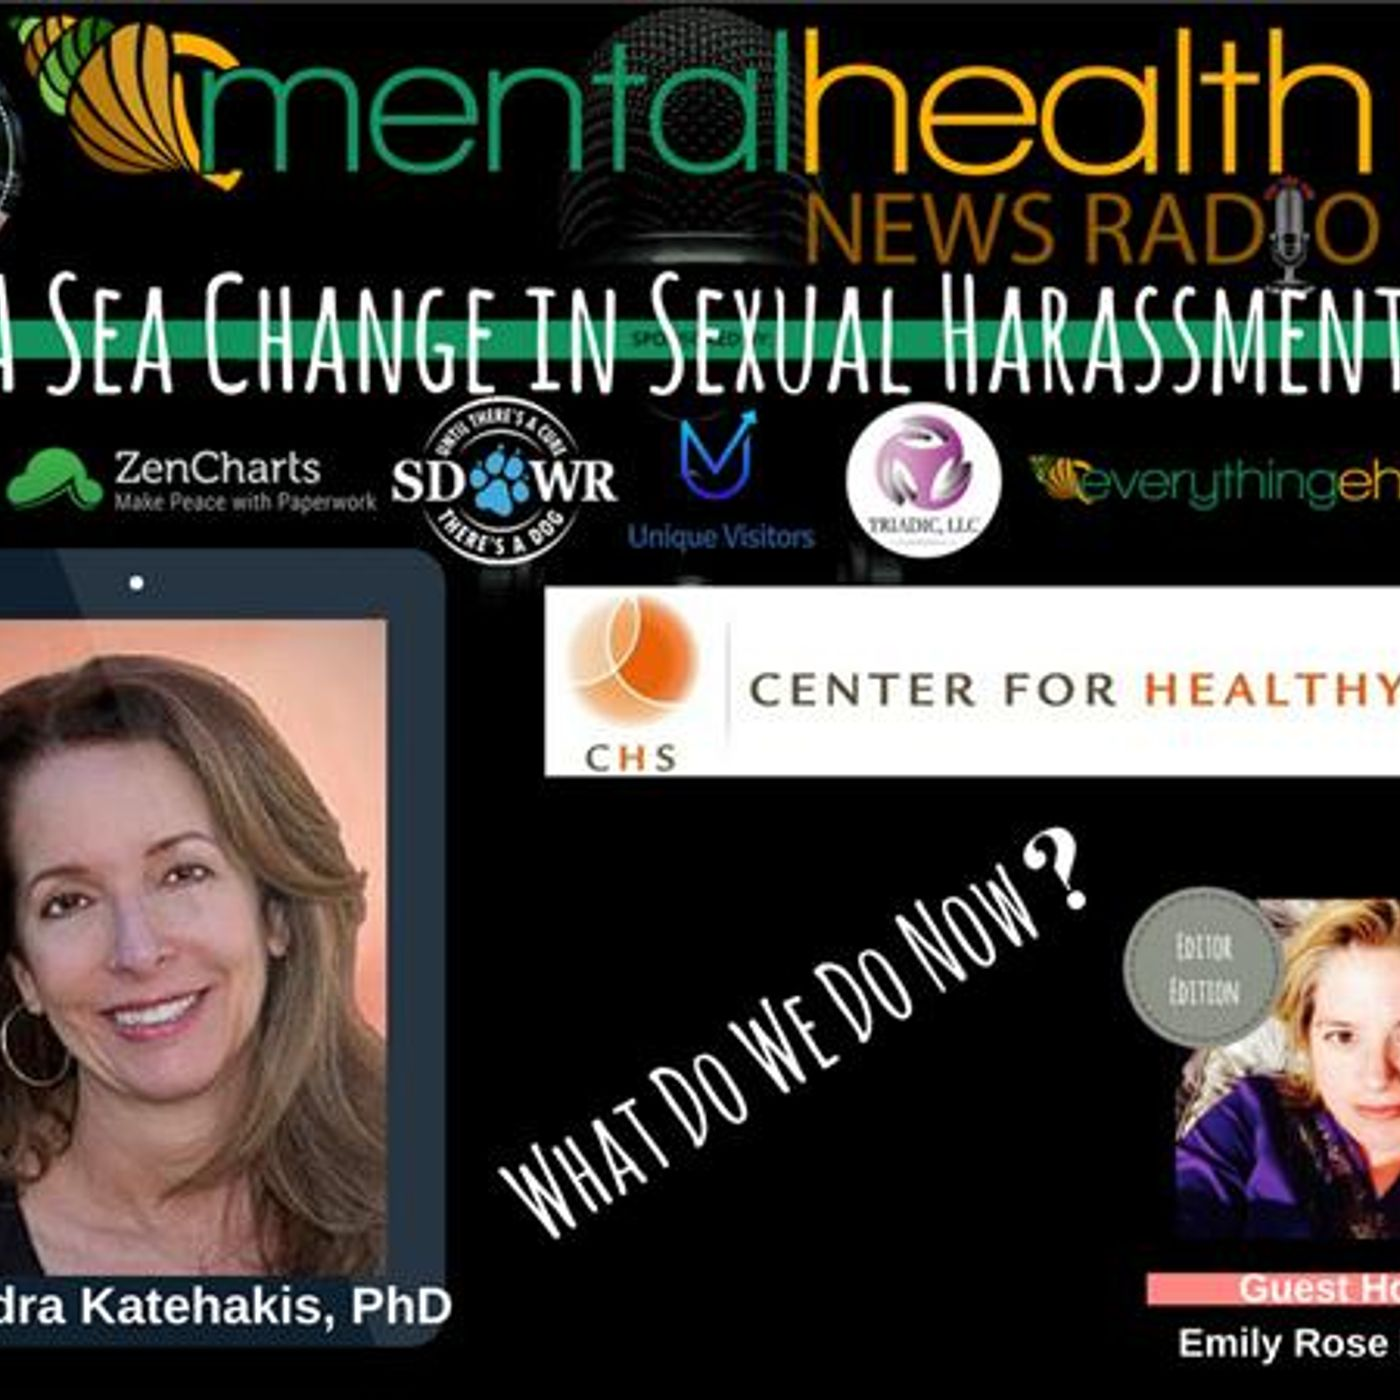 Mental Health News Radio - What Do We Do Now? A Sea Change in Sexual Harassment: Dr. Alexandra Katehakis